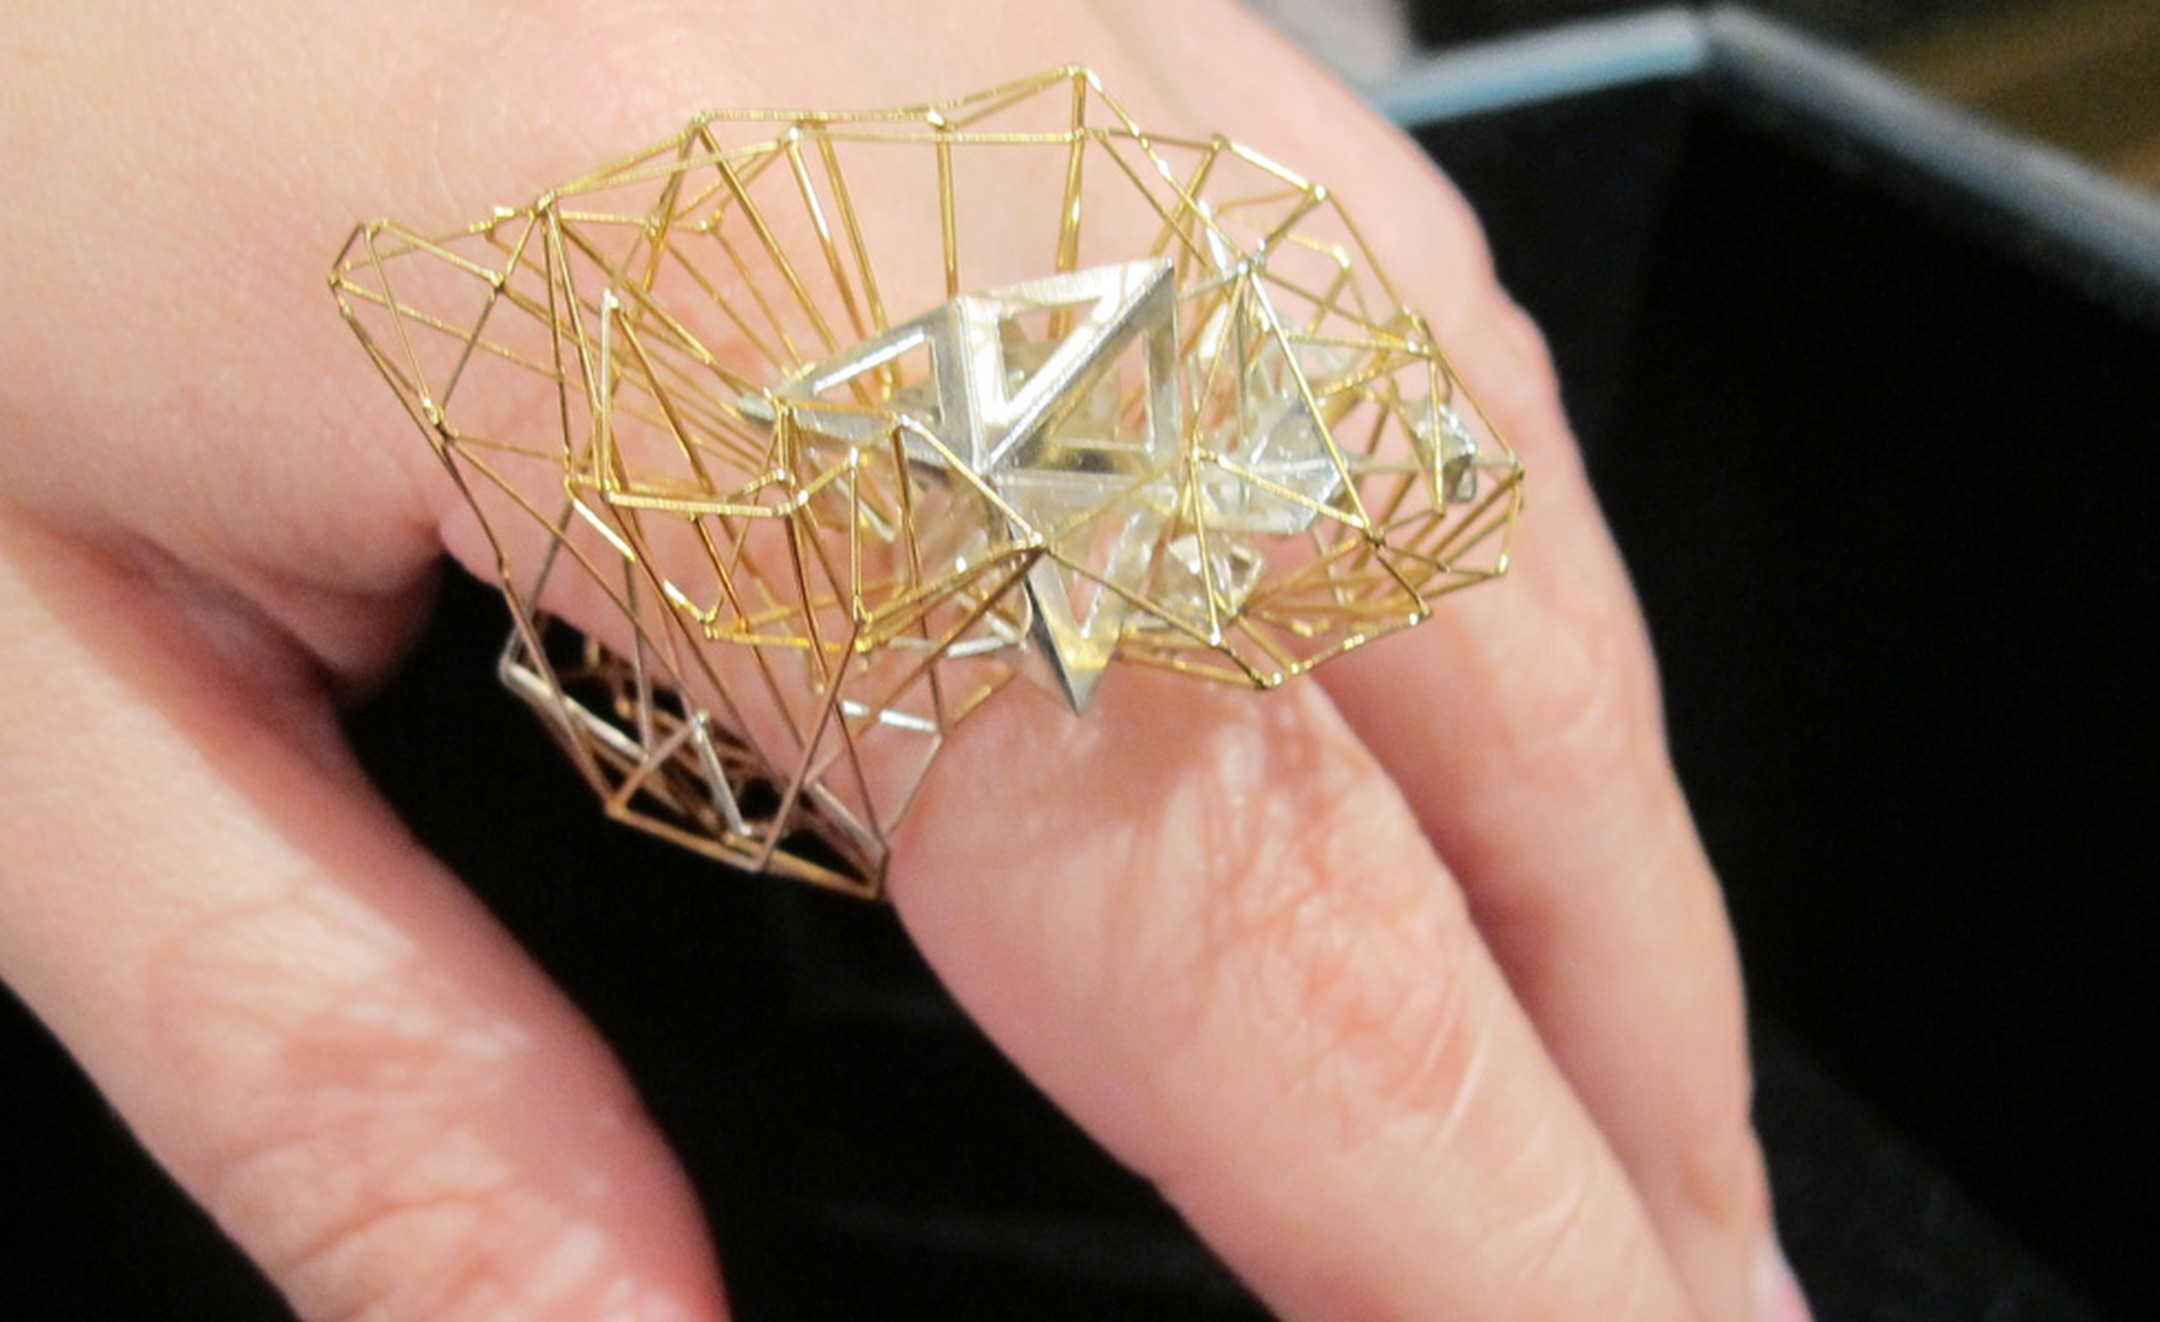 Kathy Vones Miosis ring in gold inspired by dawn light on the Barbican £1,400